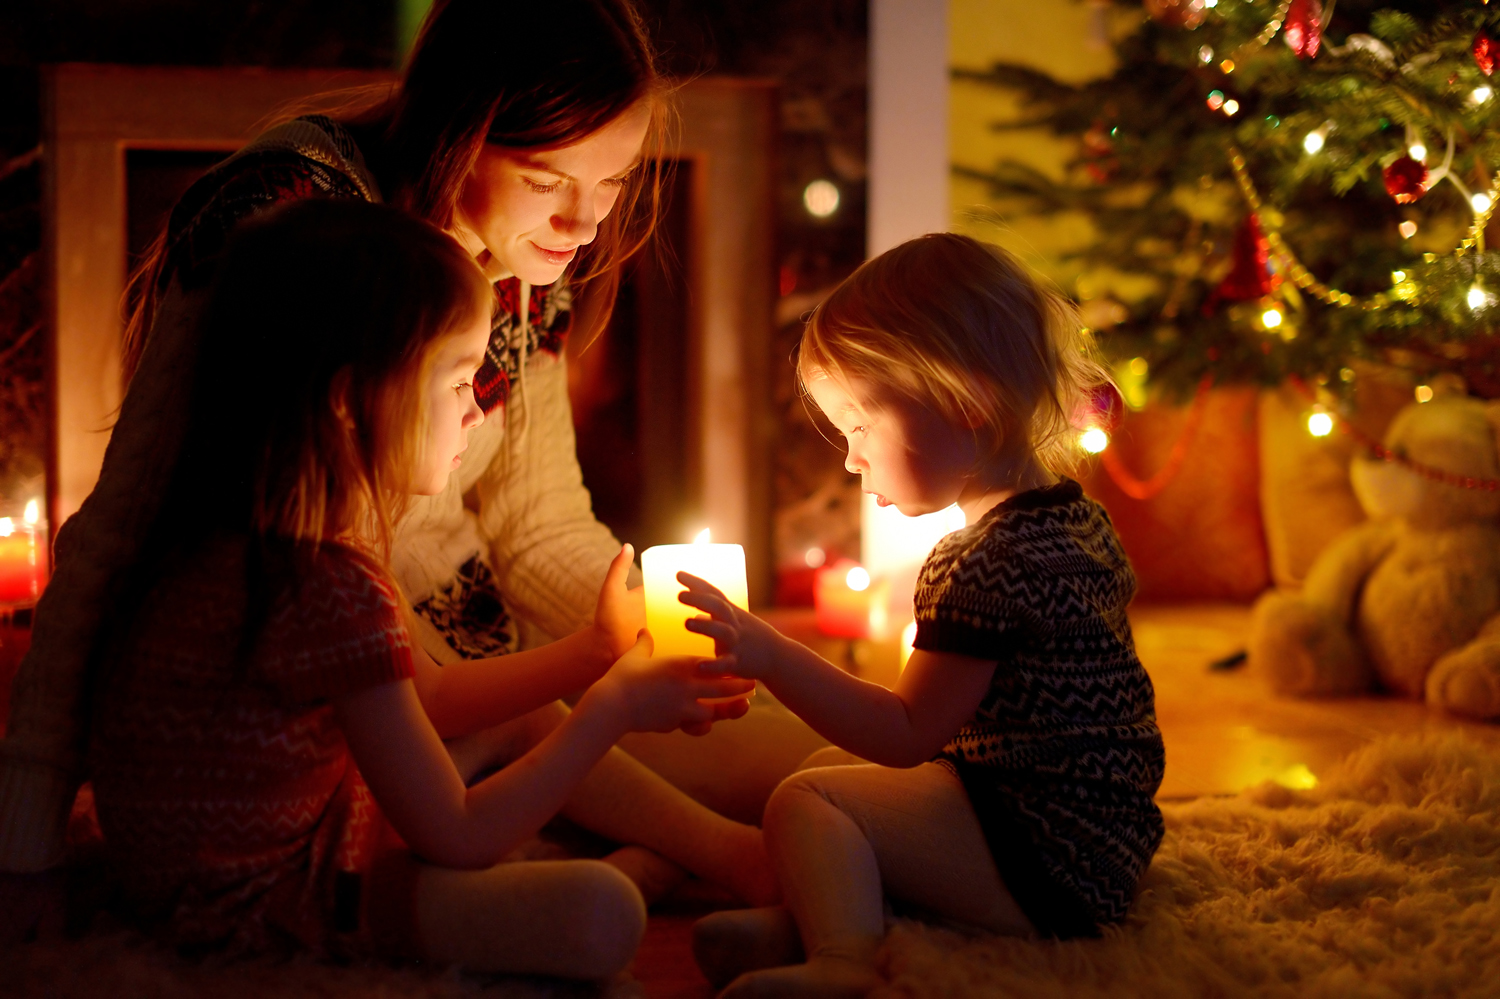 Family tradition of a little girl with her mother and sister lighting a candle underneath a Christmas Tree